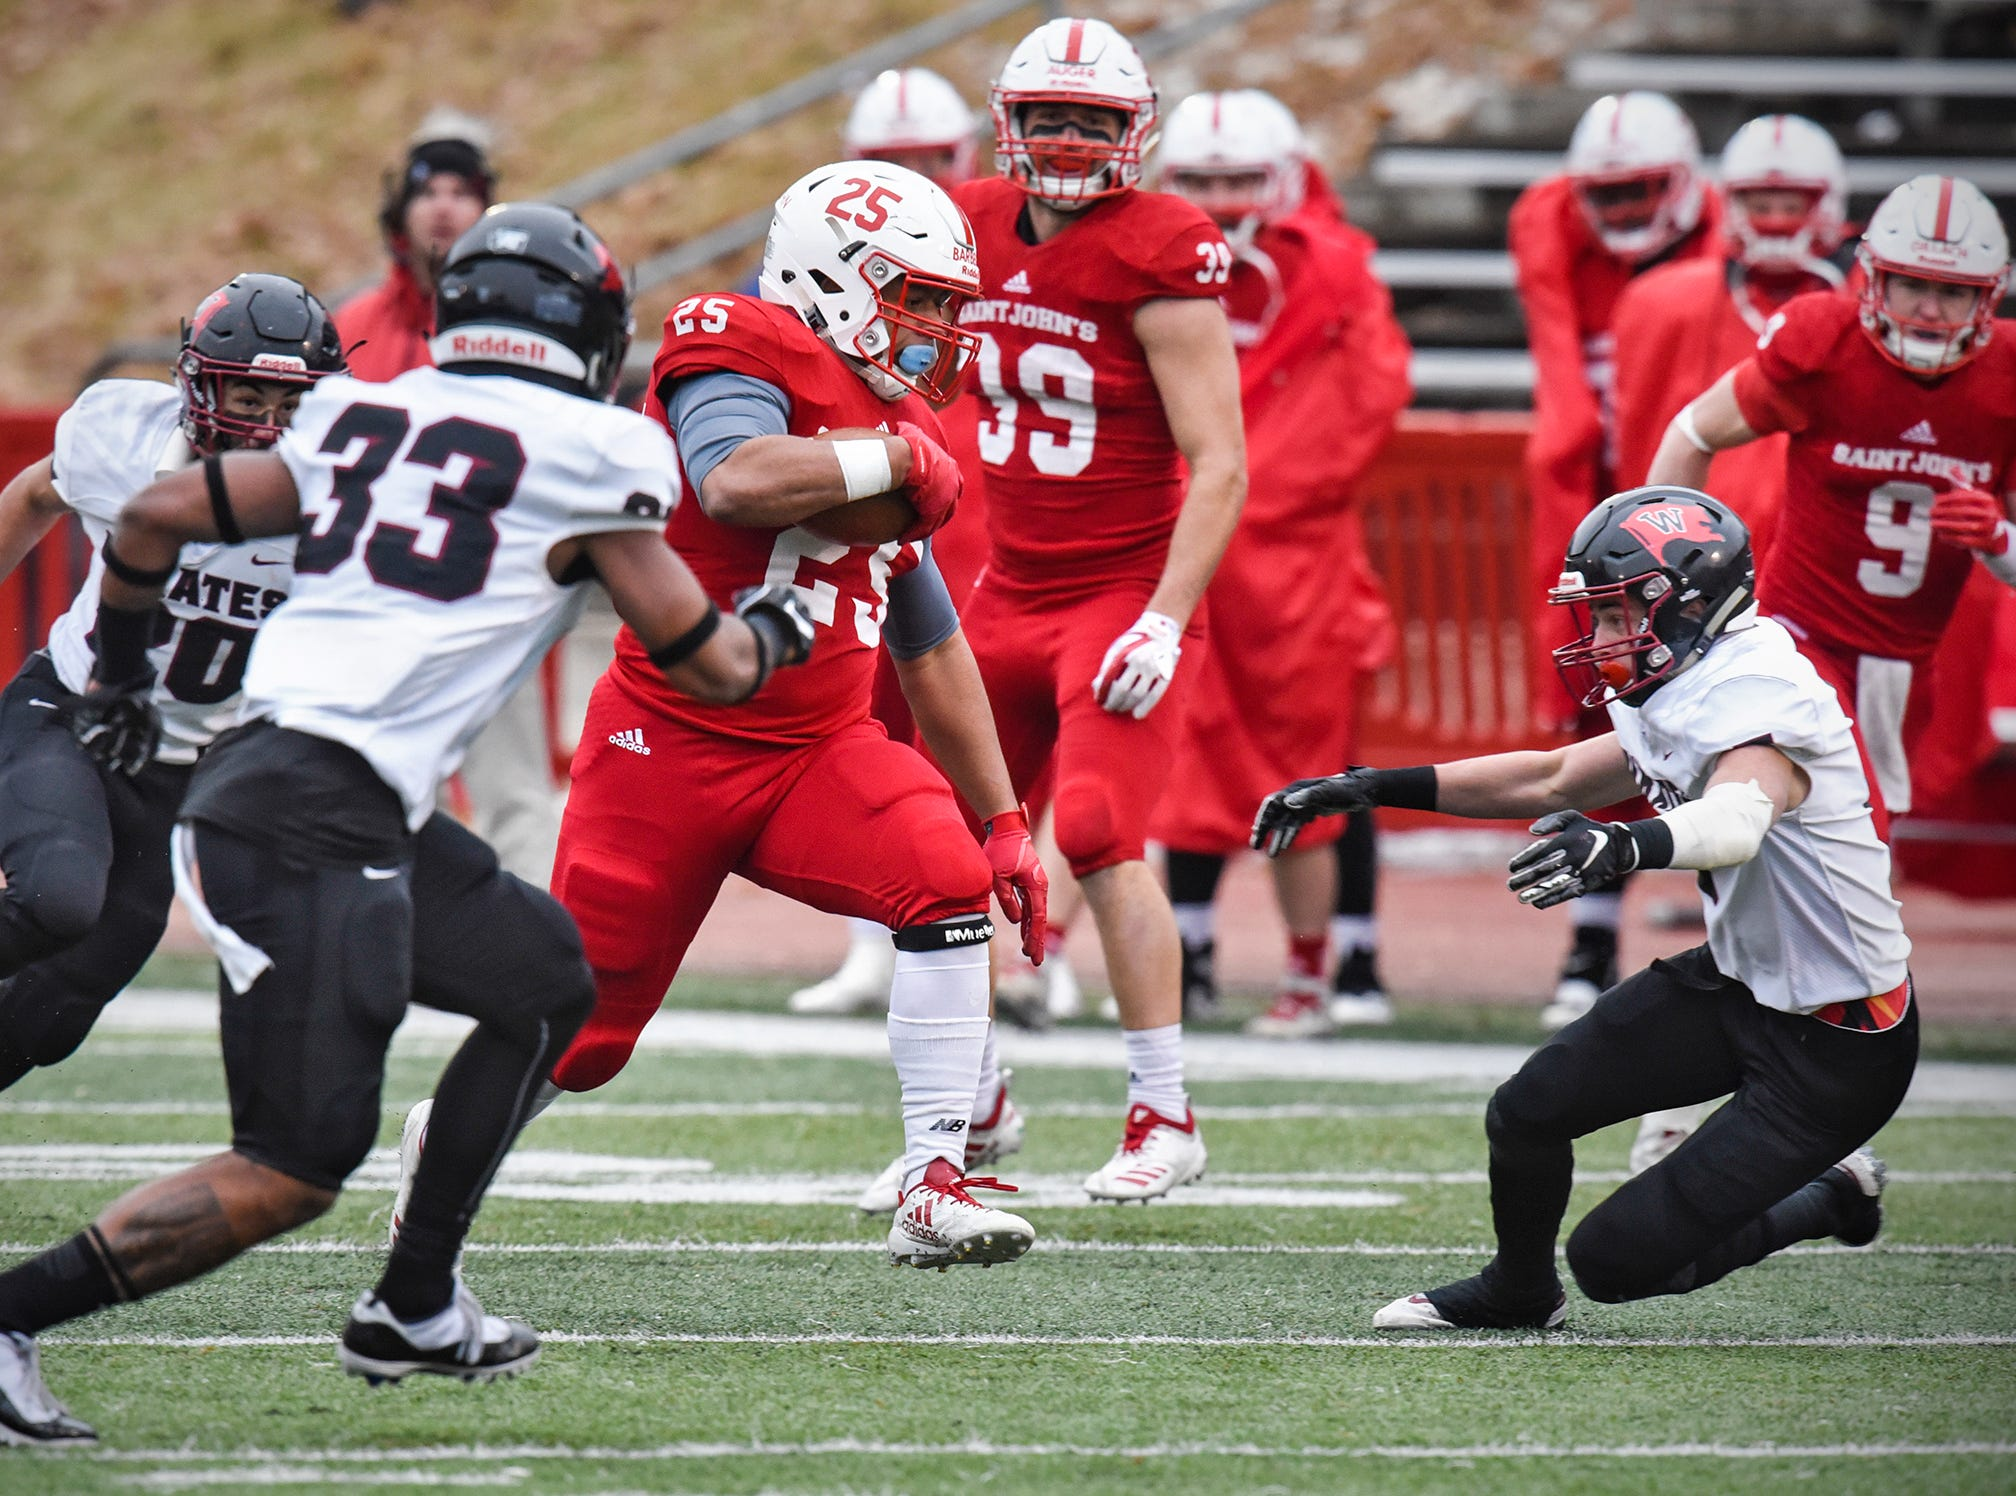 Kai Barber of St. John's rushes for a gain during the Saturday, Nov. 24, game against Whitworth at Clemens Stadium in Collegeville.